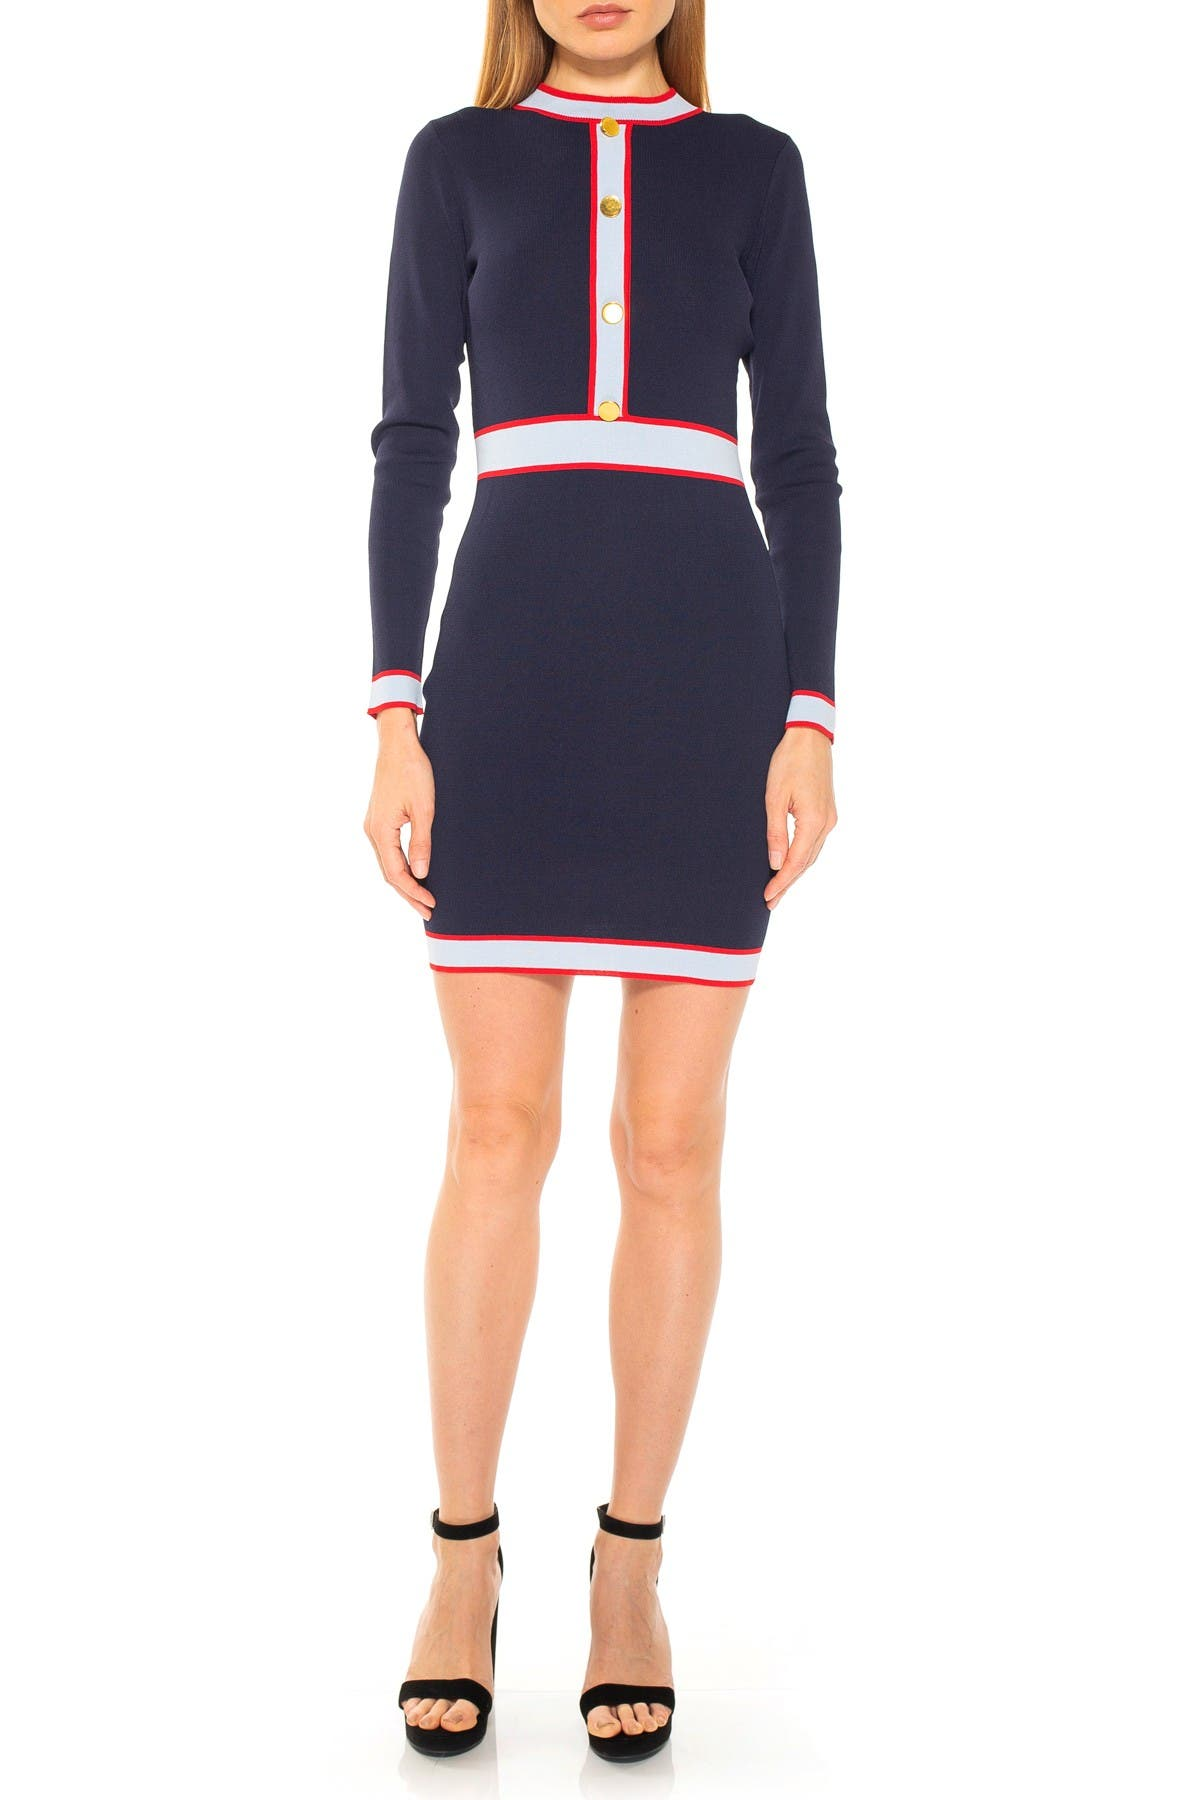 Image of Alexia Admor Betty Long Sleeve Colorblock Knit Dress